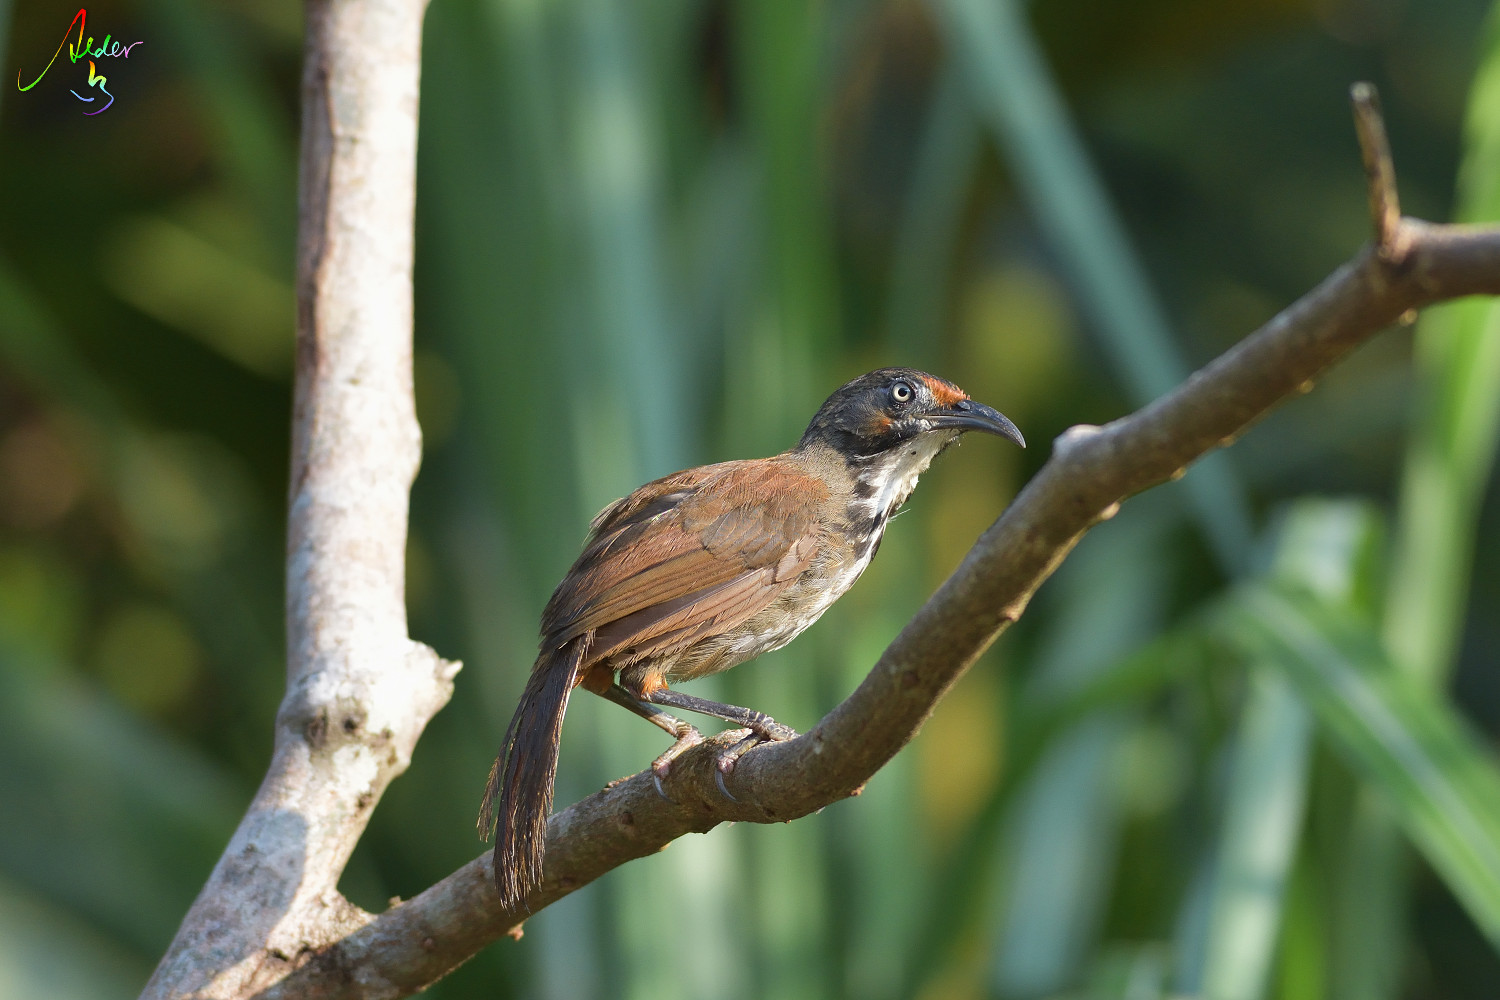 Rusty-cheeked_Scimitar_Babbler_4358